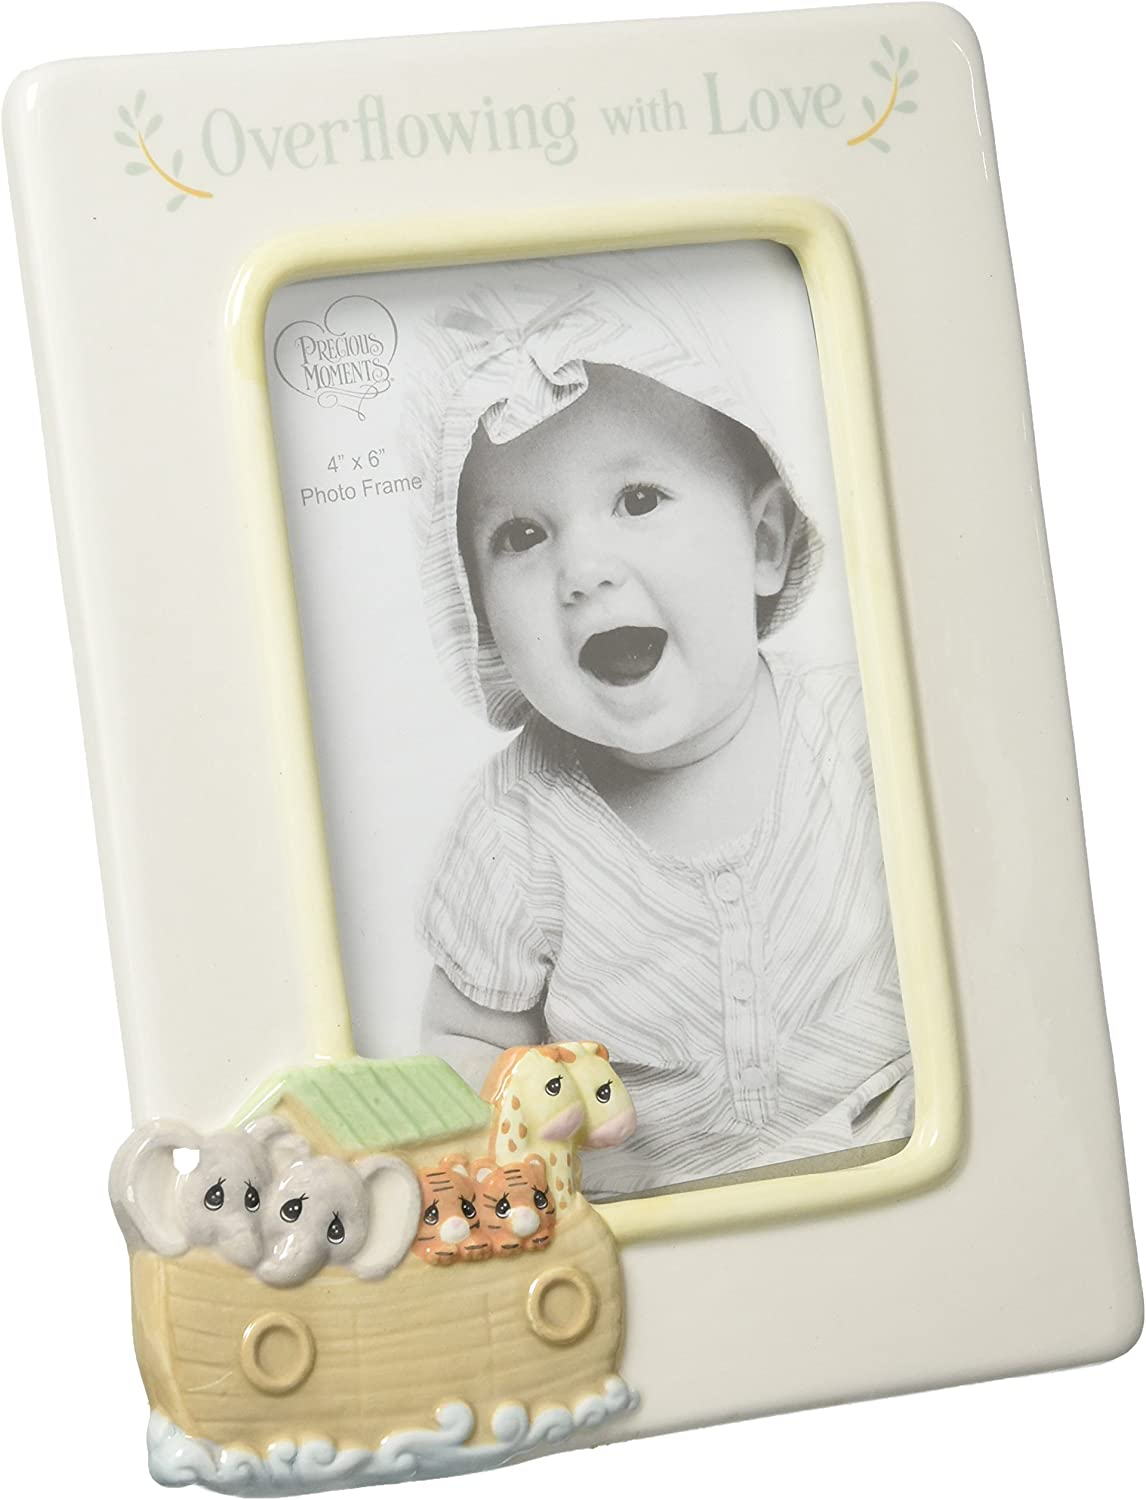 Precious Moments Overflowing with Love Noah's Ark Ceramic 4x6 Nursery Décor Photo Frame 173431